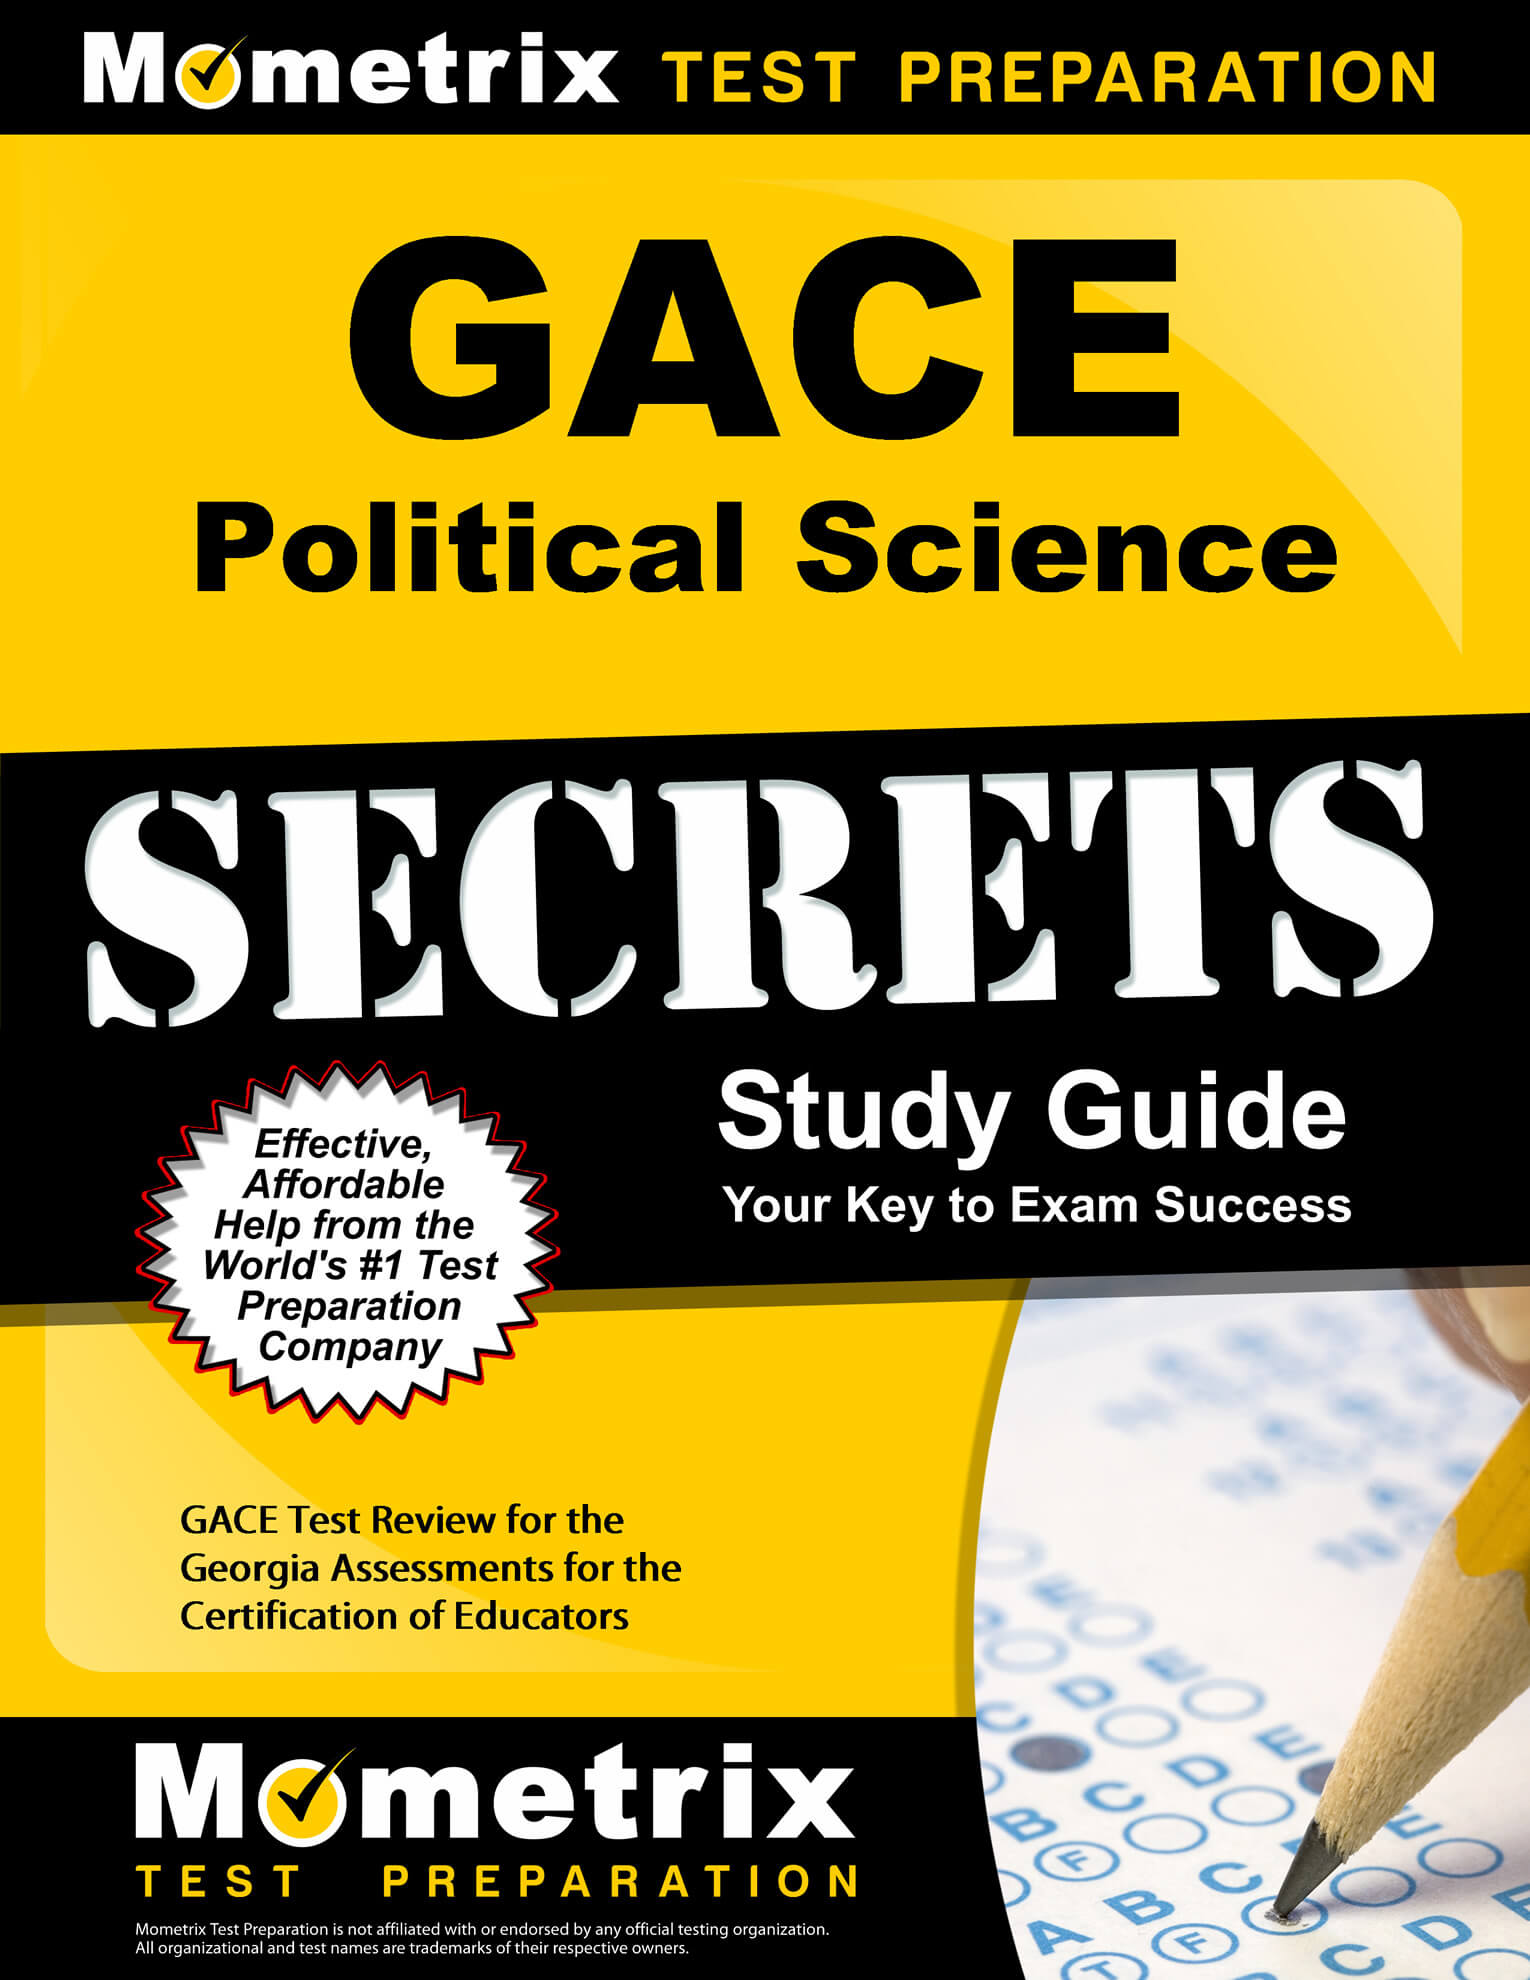 GACE Political Science Study Guide